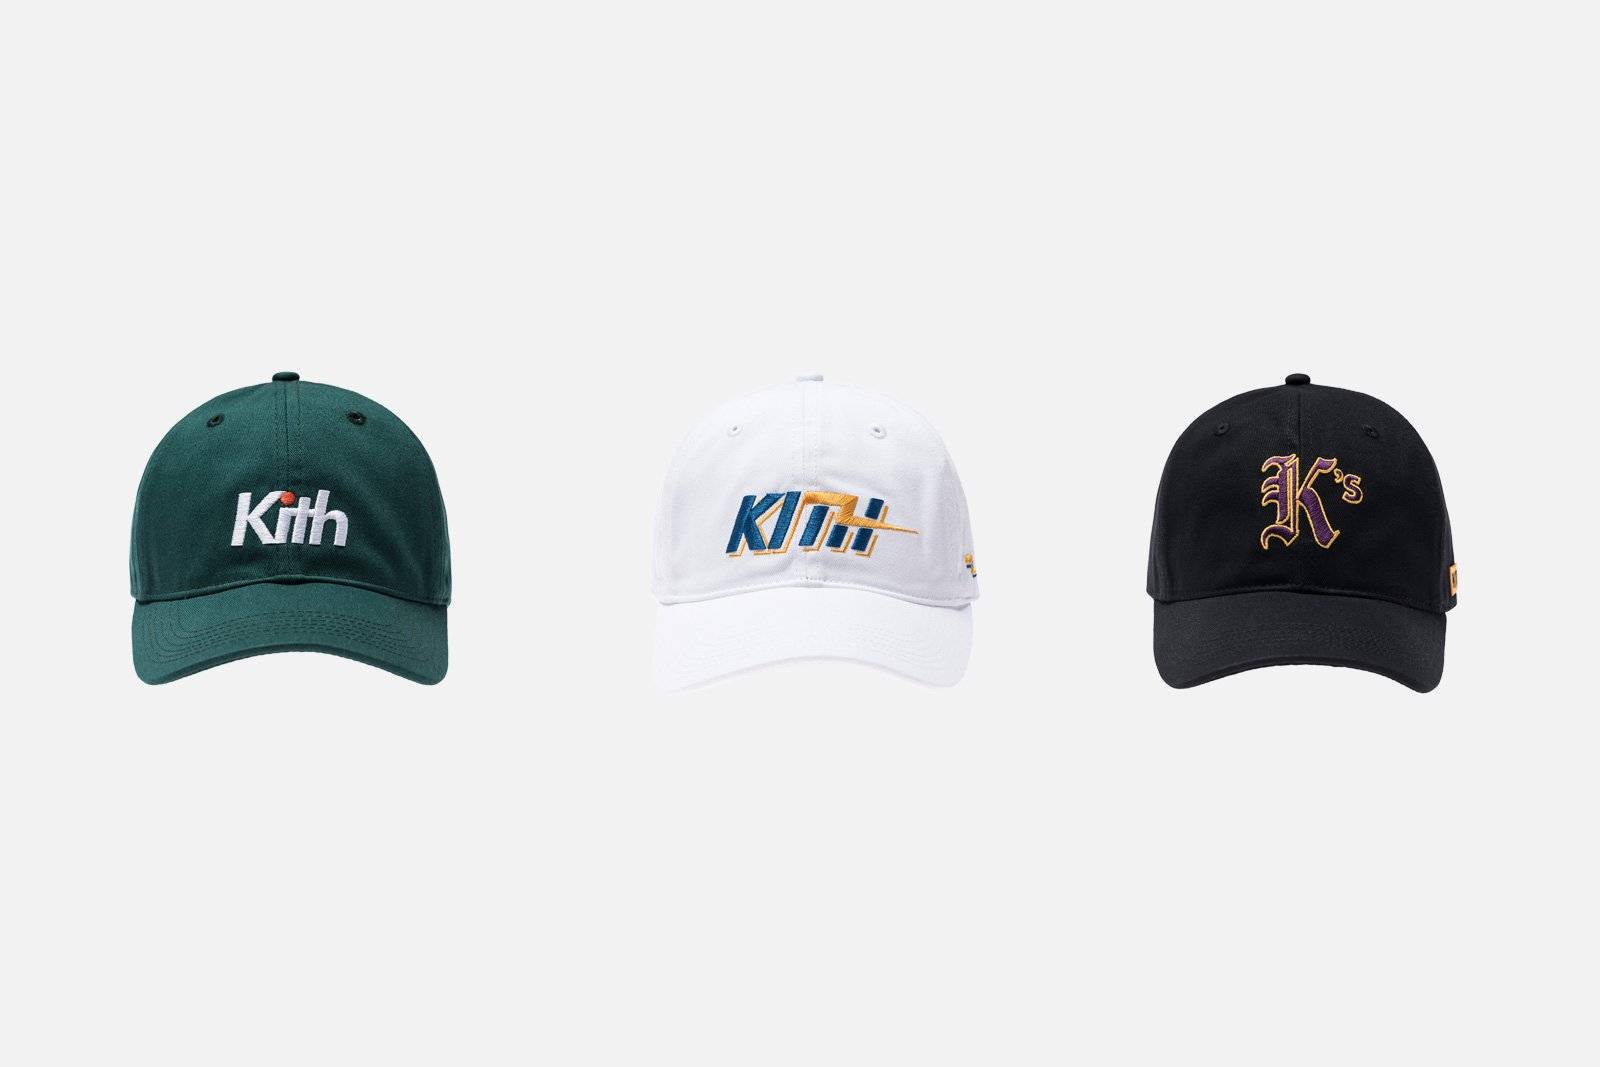 Kith x Mitchell and Ness